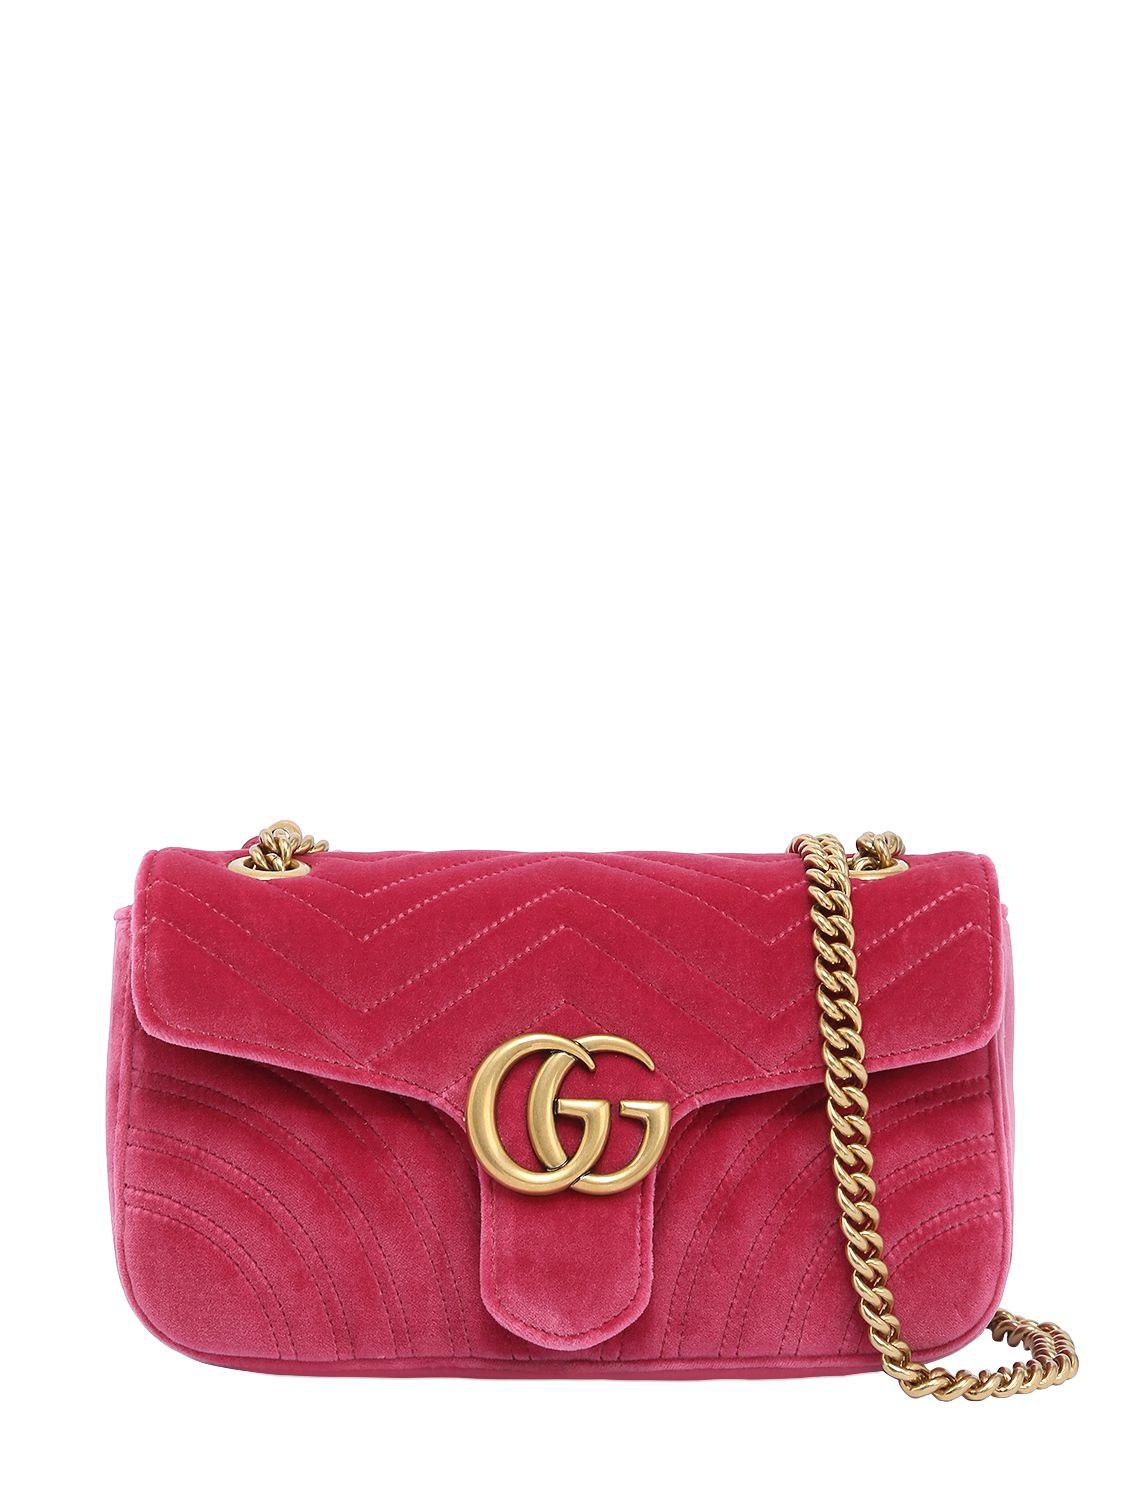 e31657600ba6 Gucci Small Gg Marmont 2.0 Velvet Shoulder Bag in Pink - Save 21% - Lyst